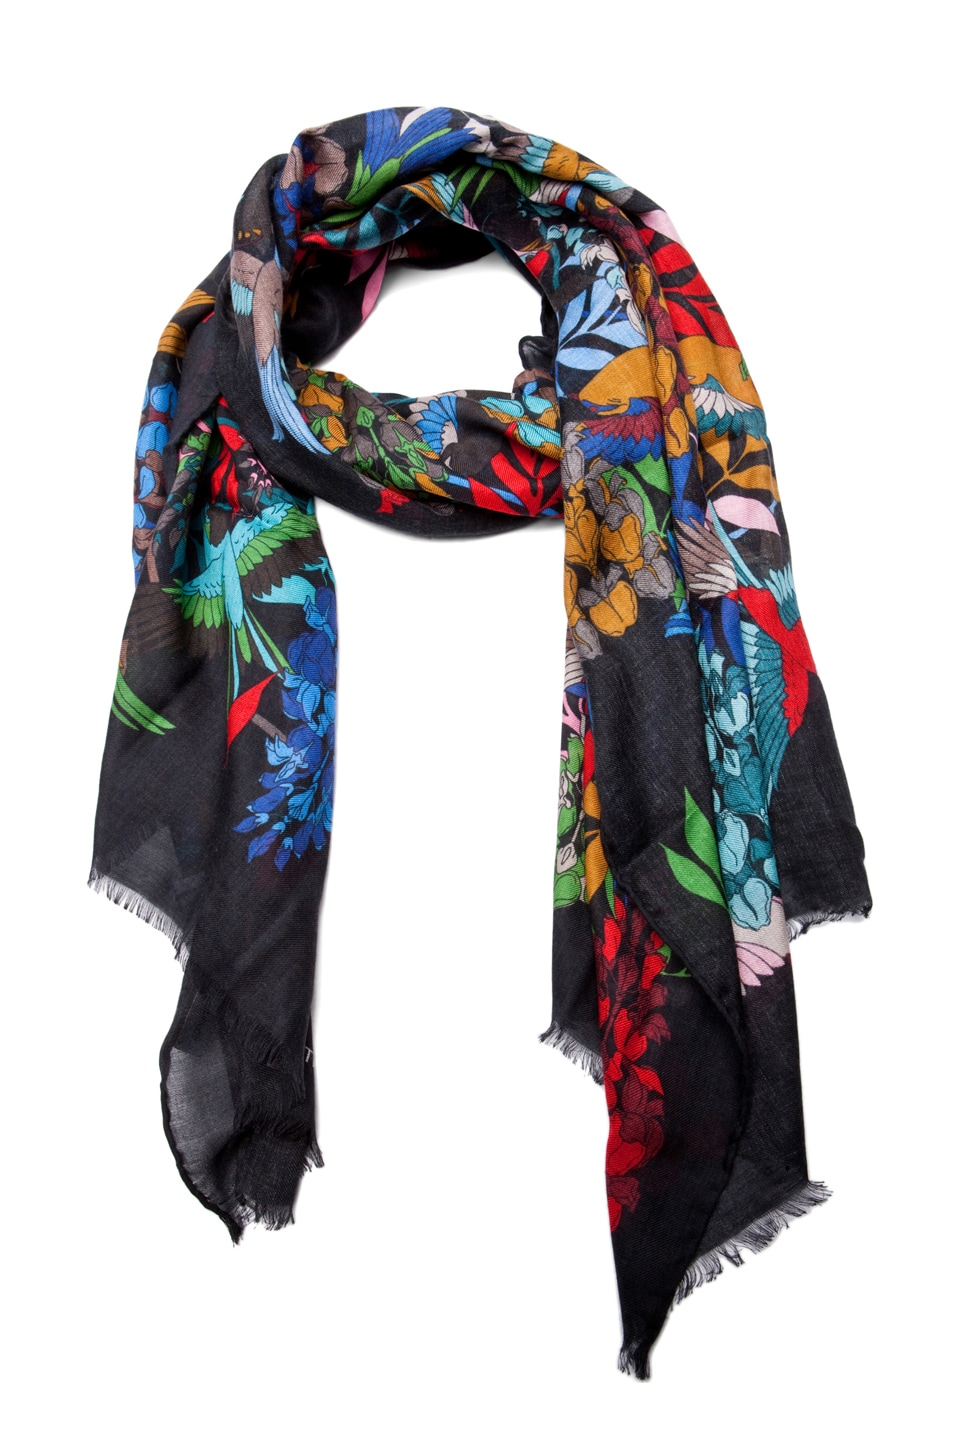 Image 1 of Jonathan Saunders Bird Cashmere/Silk Scarf in Multi Black